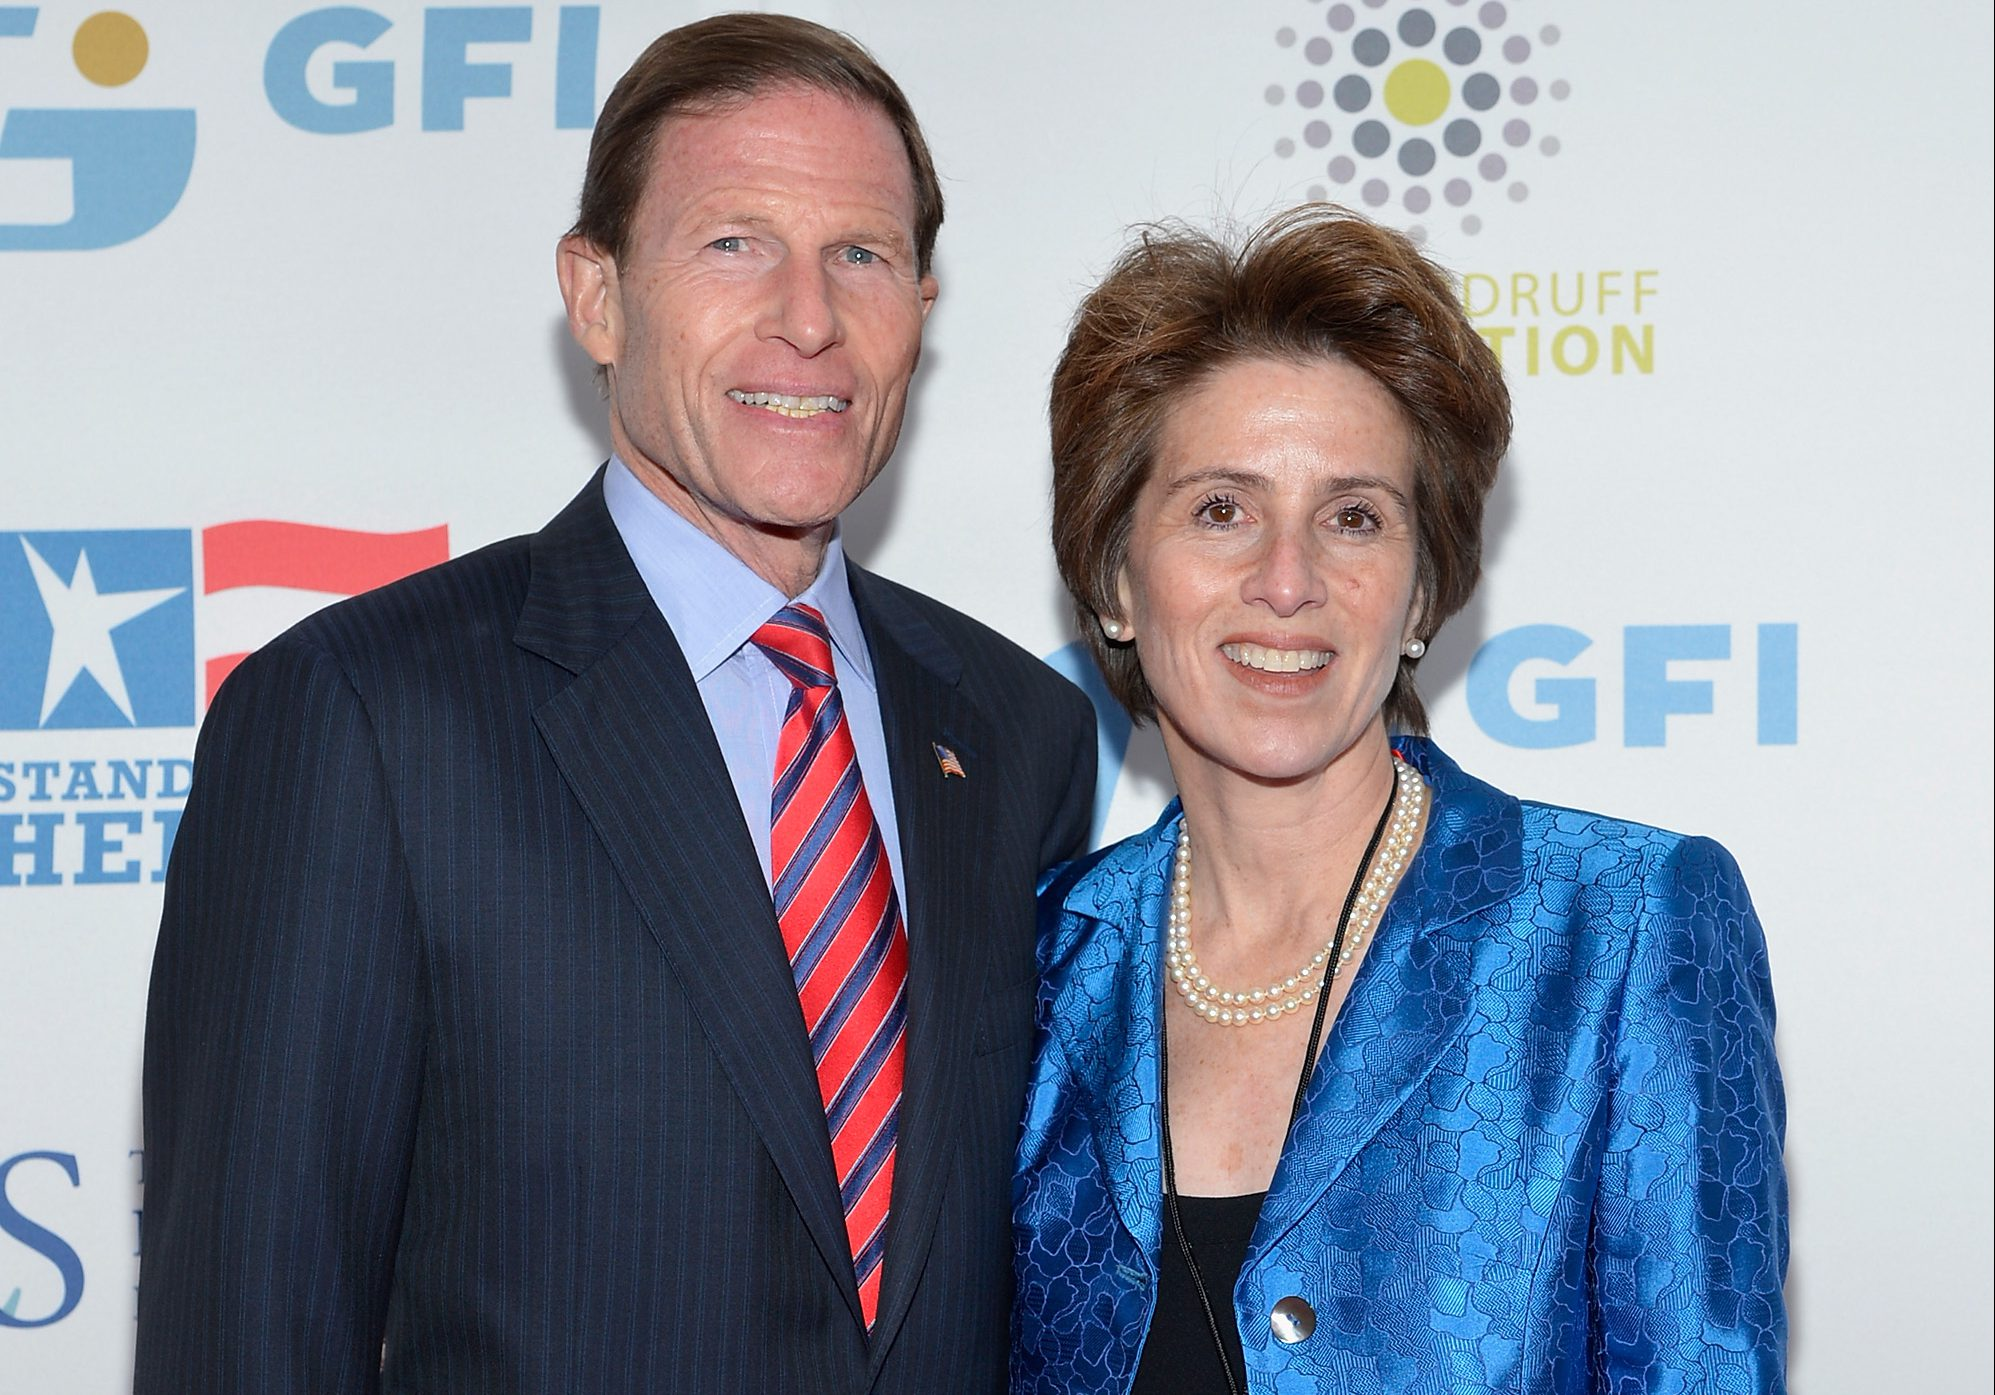 Richard Blumenthal wife, Richard Blumenthal cynthia, Richard Blumenthal wife cynthia